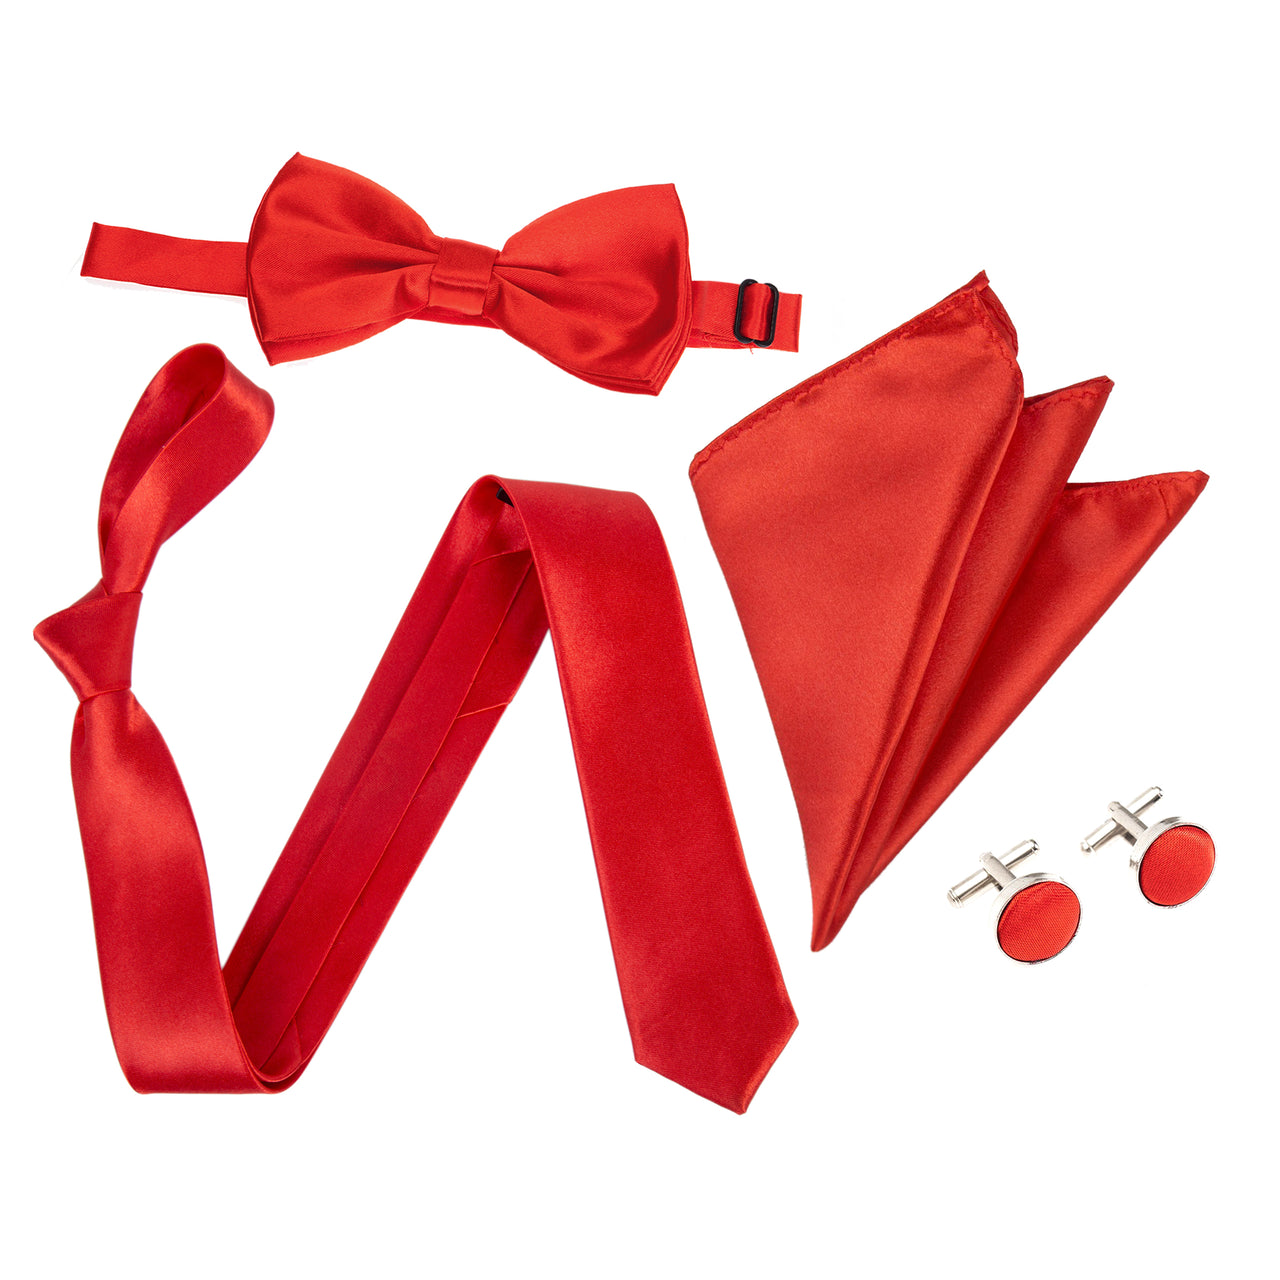 "4pc Tie Set: Slim 2"" Tie, Bow Tie, Handkerchief & Cufflinks - Red"